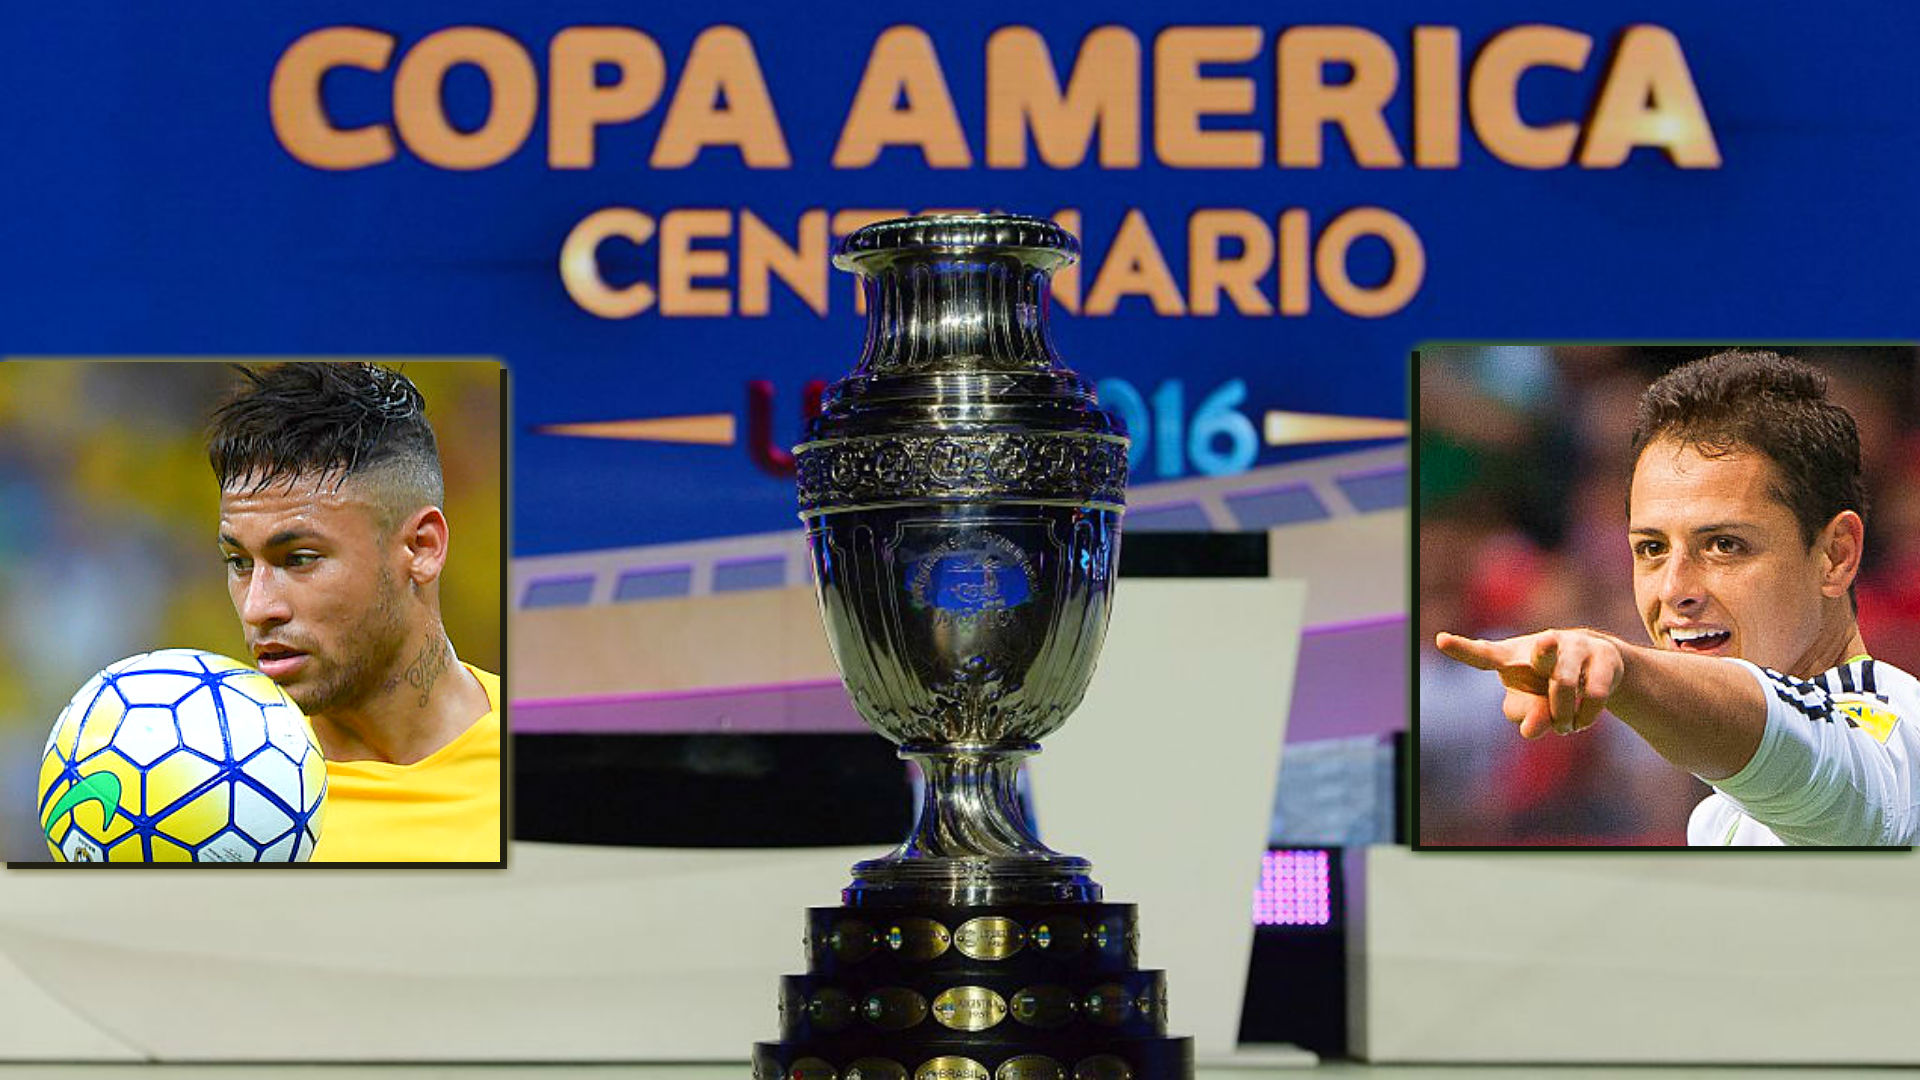 Copa America 2016 schedule: Dates, times, locations for soccer ...